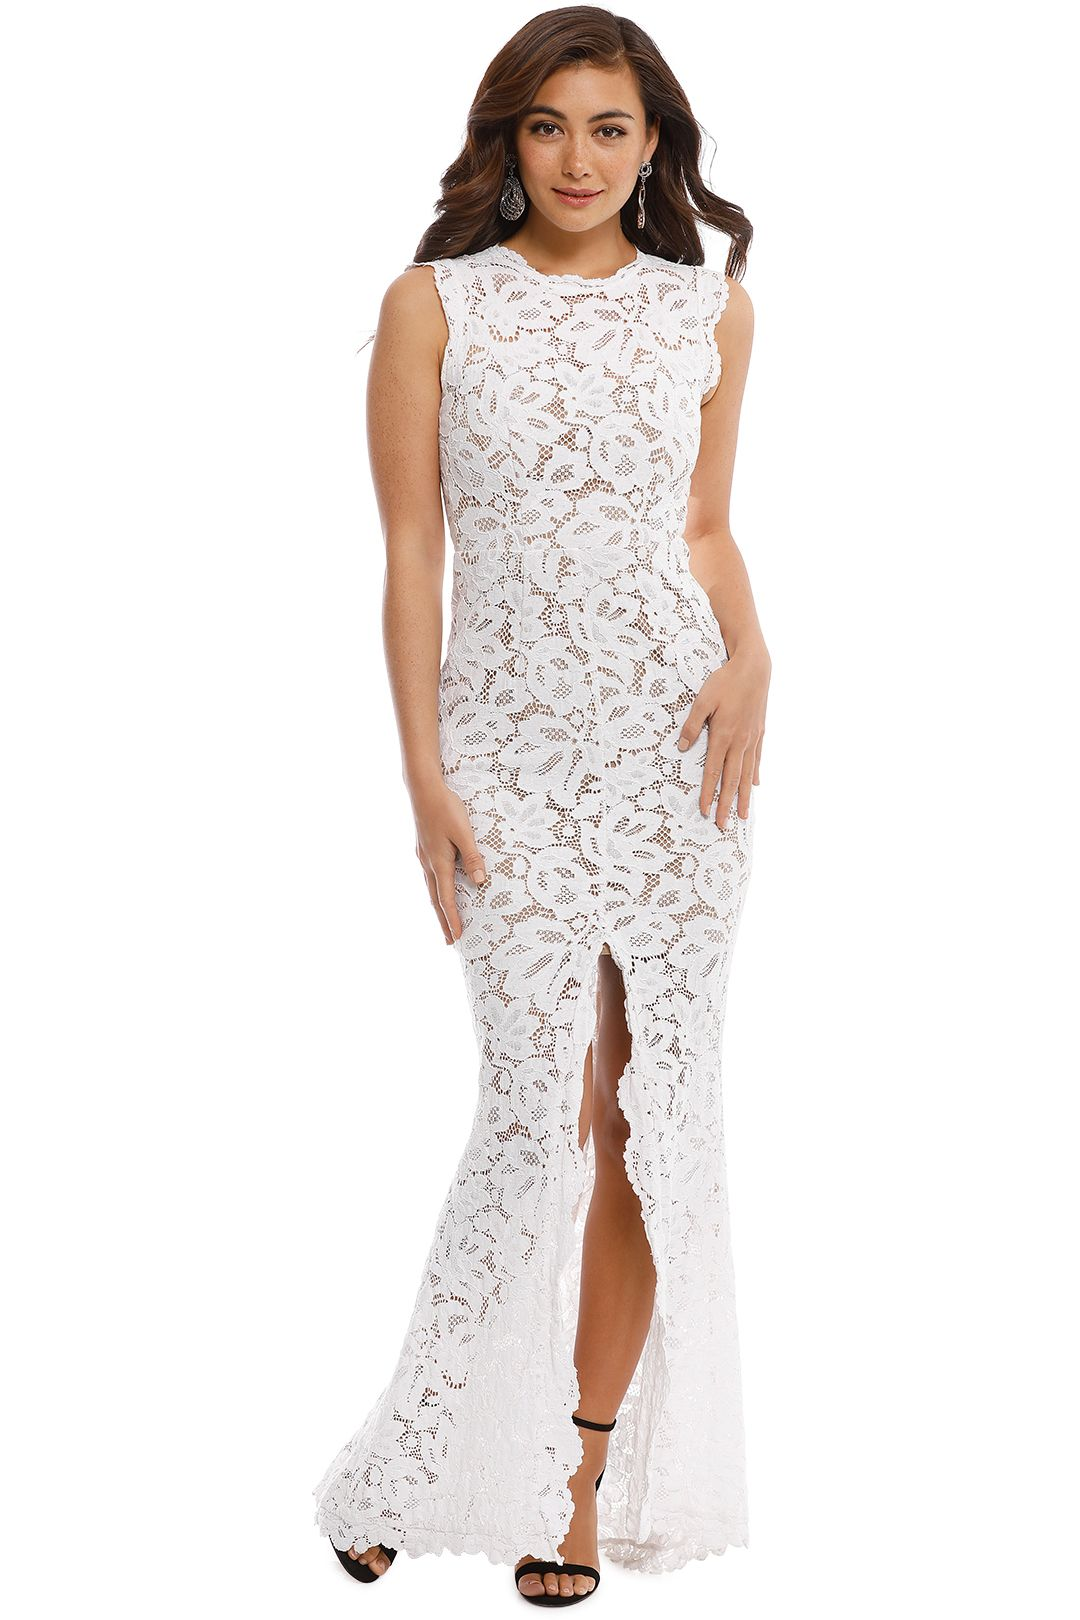 Grace and Hart - Valentine Gown - Ivory - Front